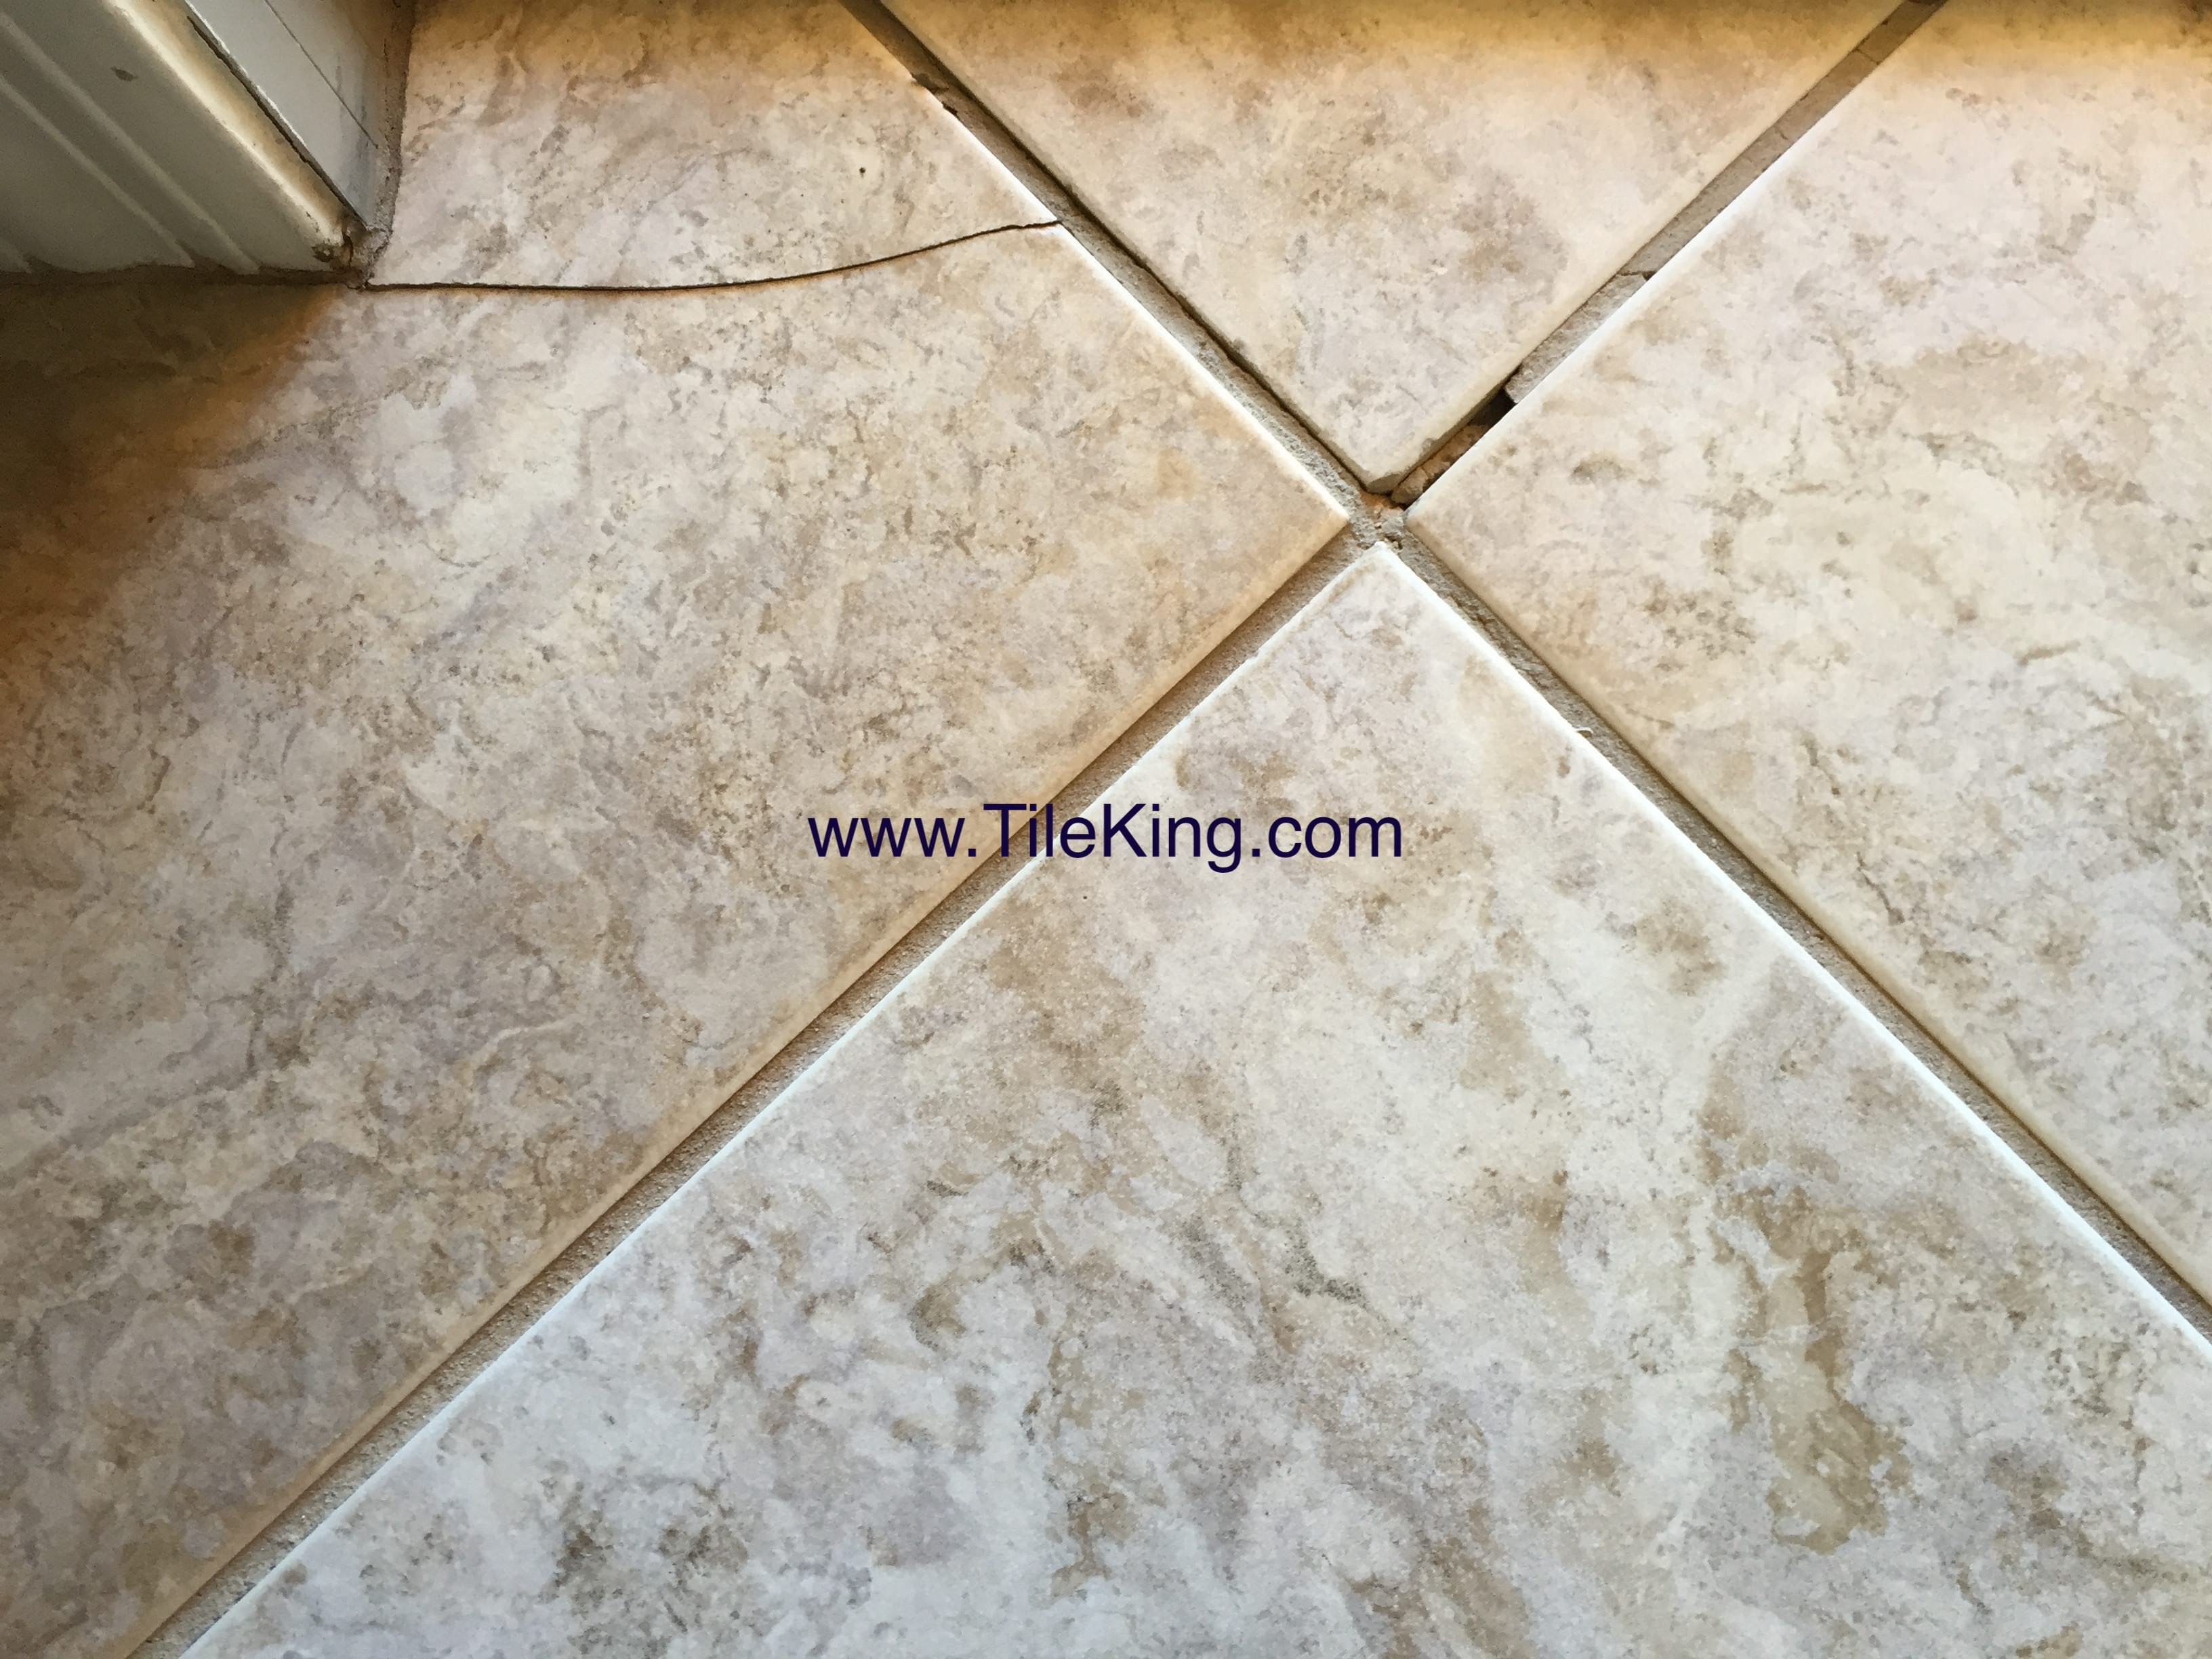 travertine crack before repair